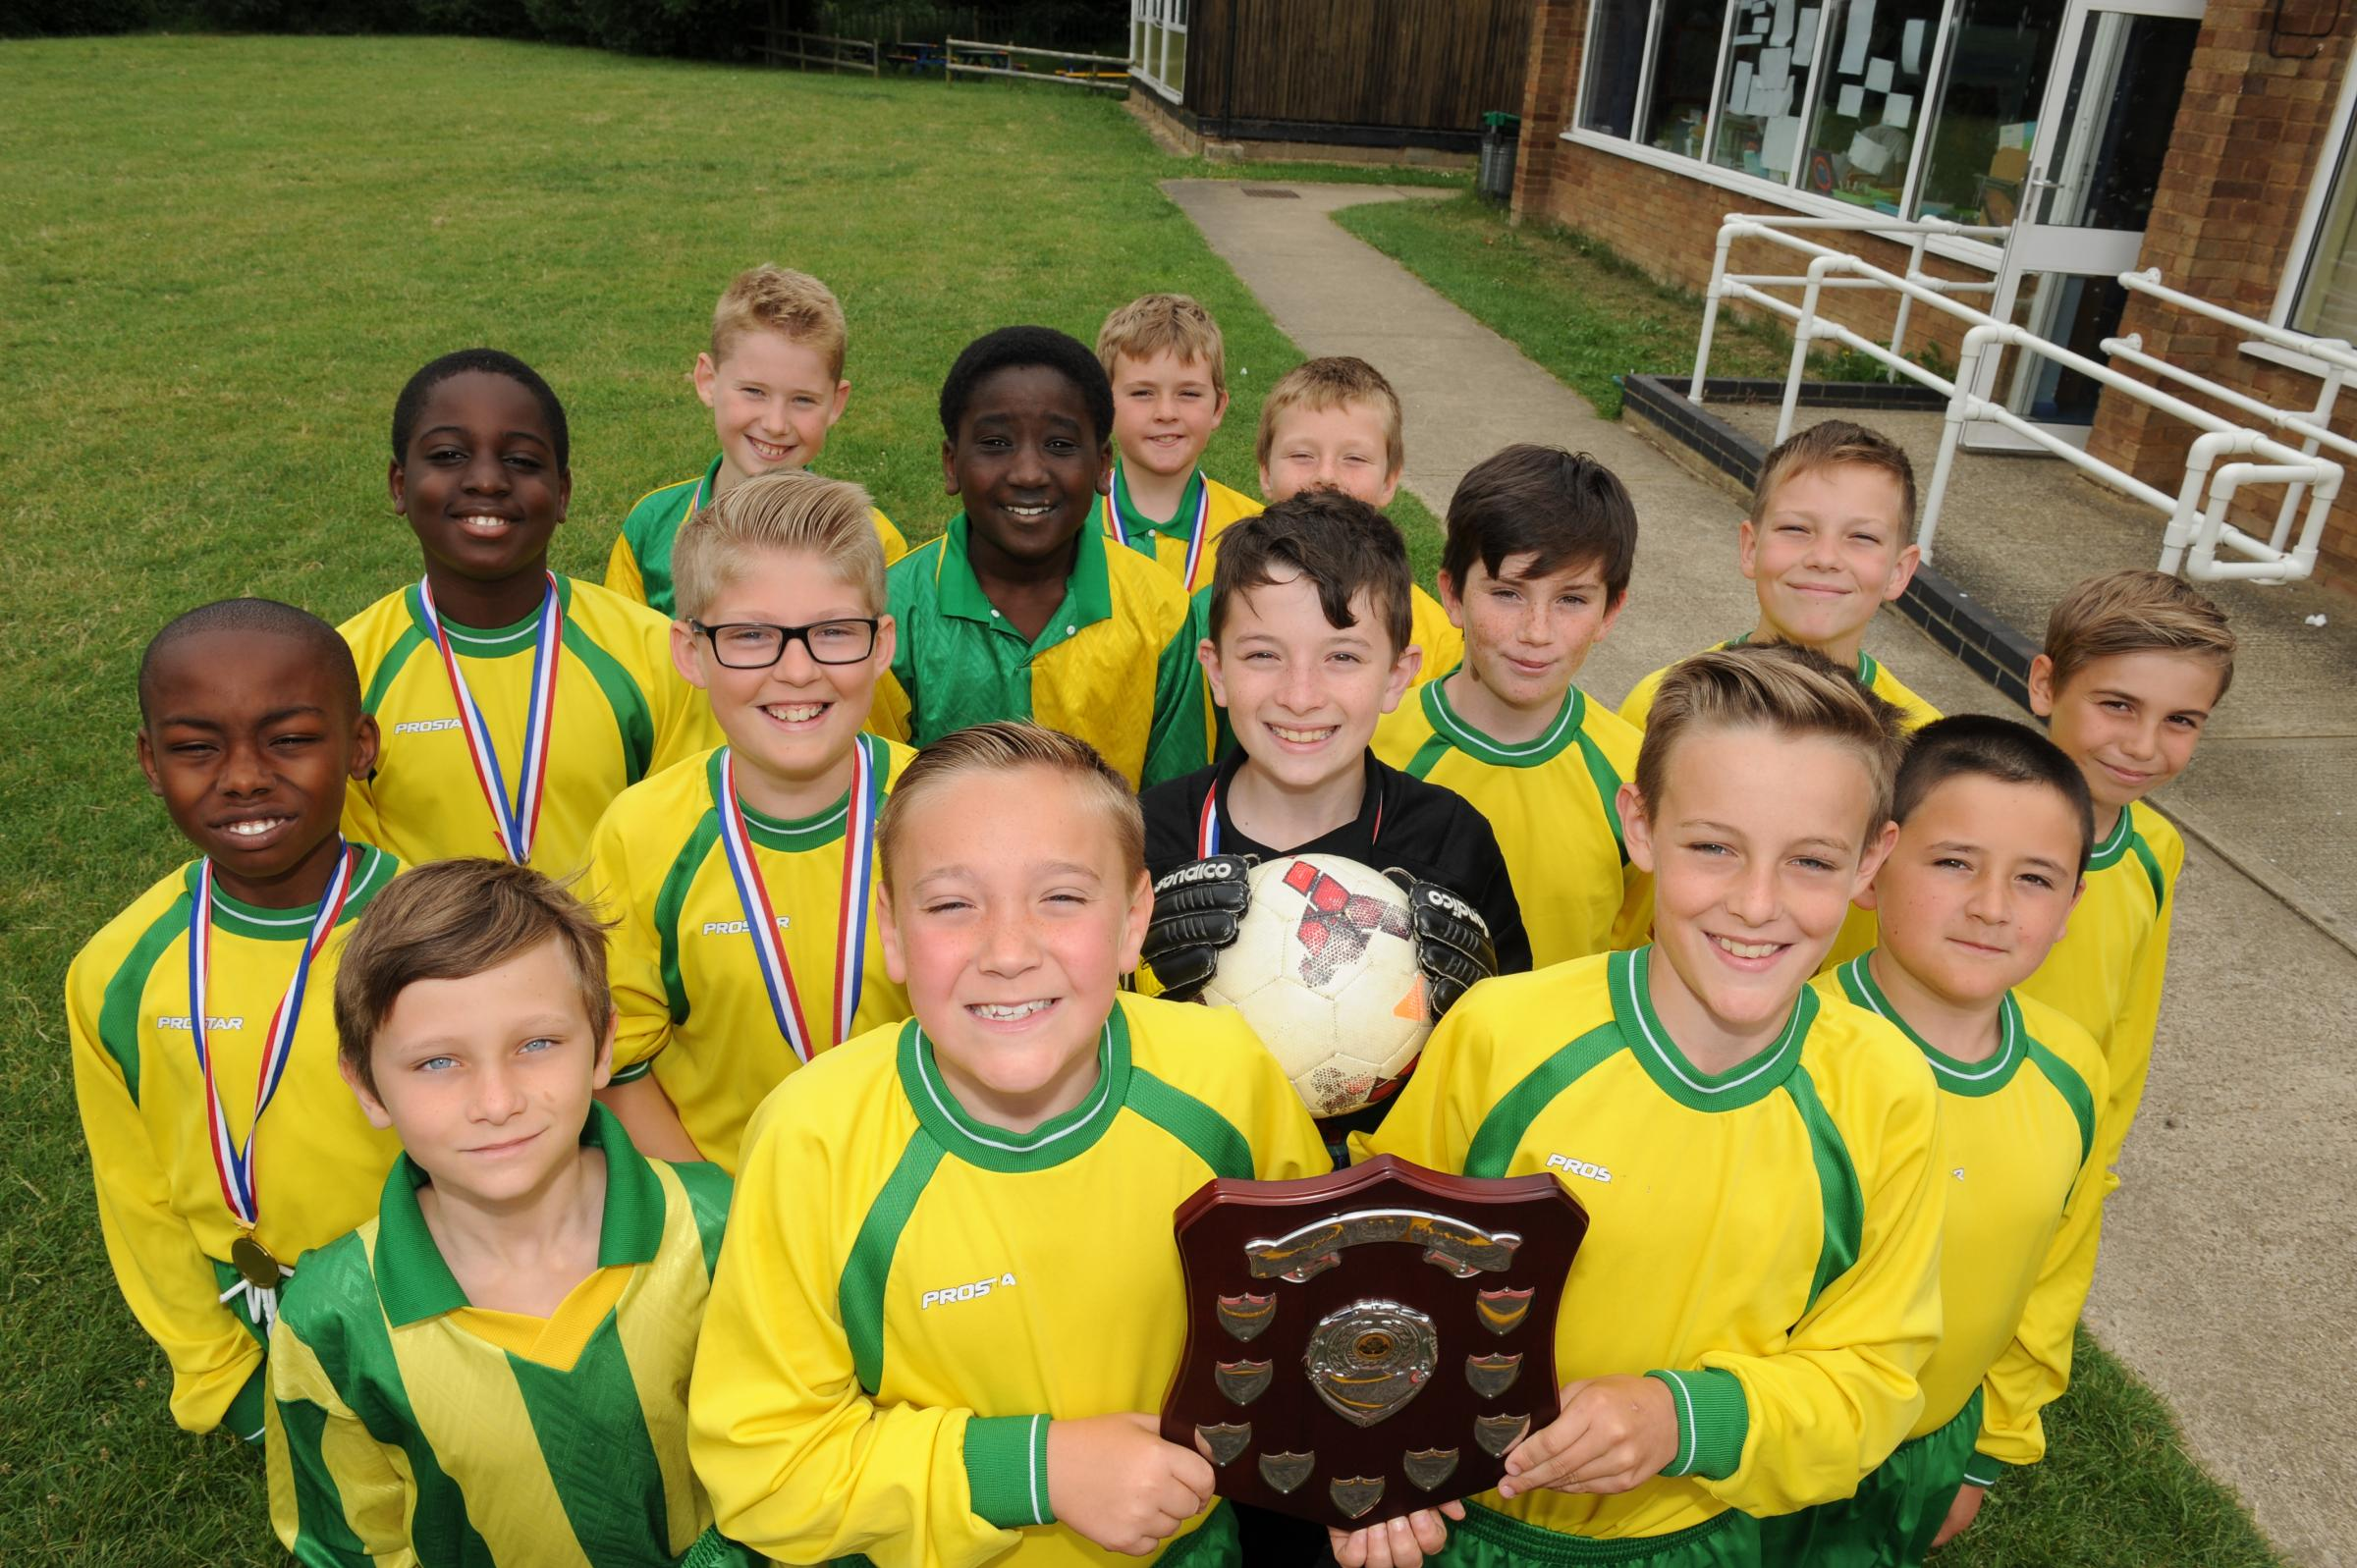 Champions – St Joseph's Catholic Primary School with their league winners' shield